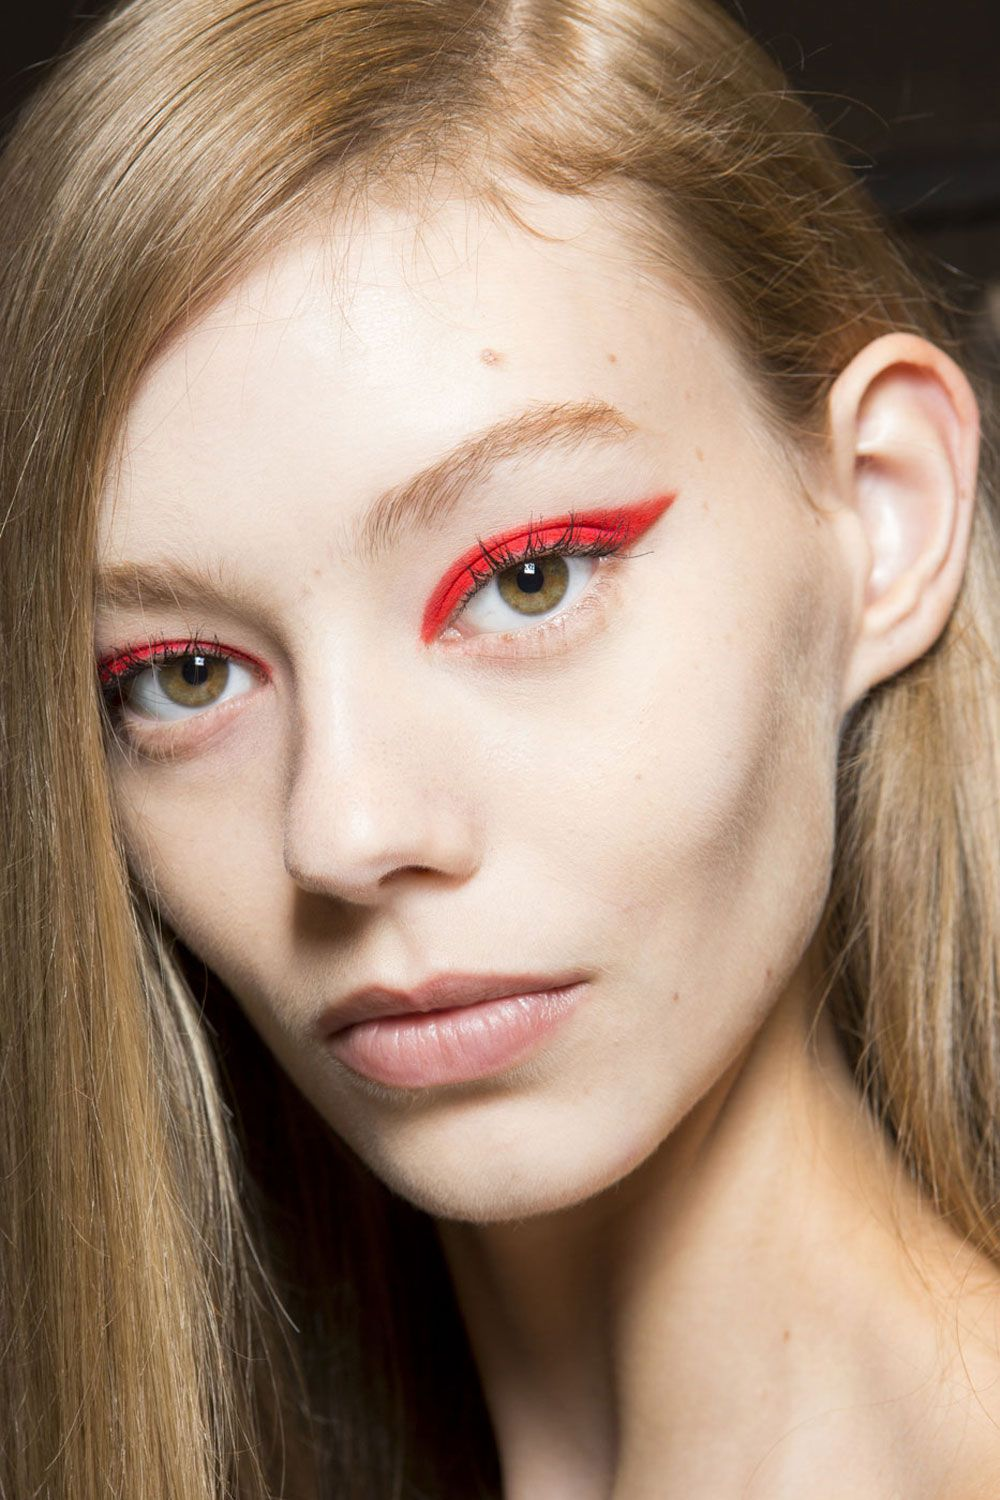 Milan Fashion Week S/S 15 Beauty Trends (With images